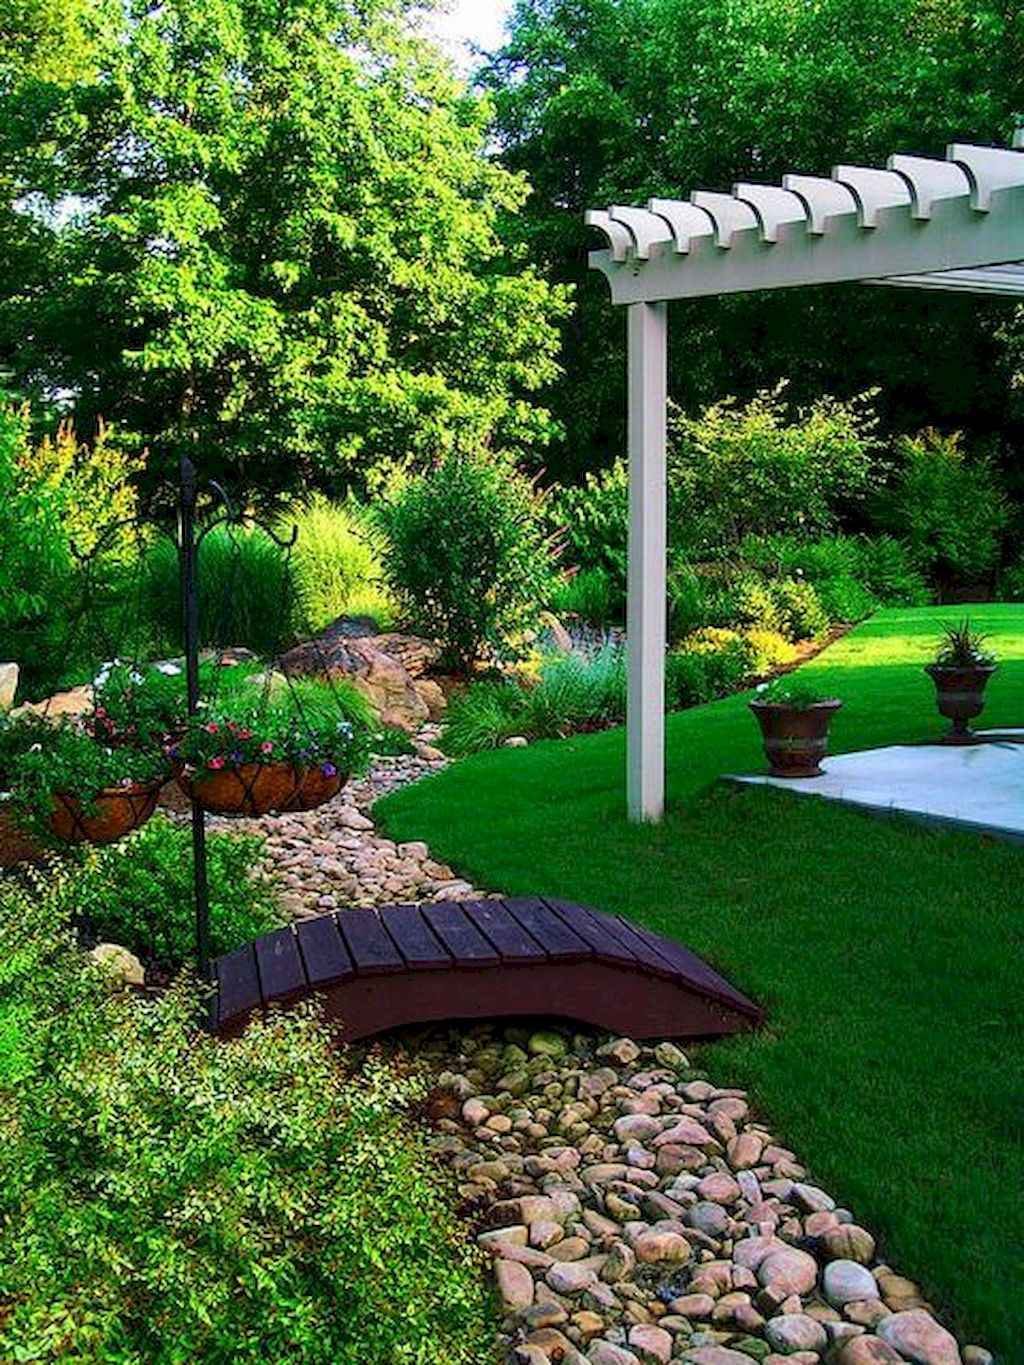 Small backyard landscaping ideas on a budget (47)